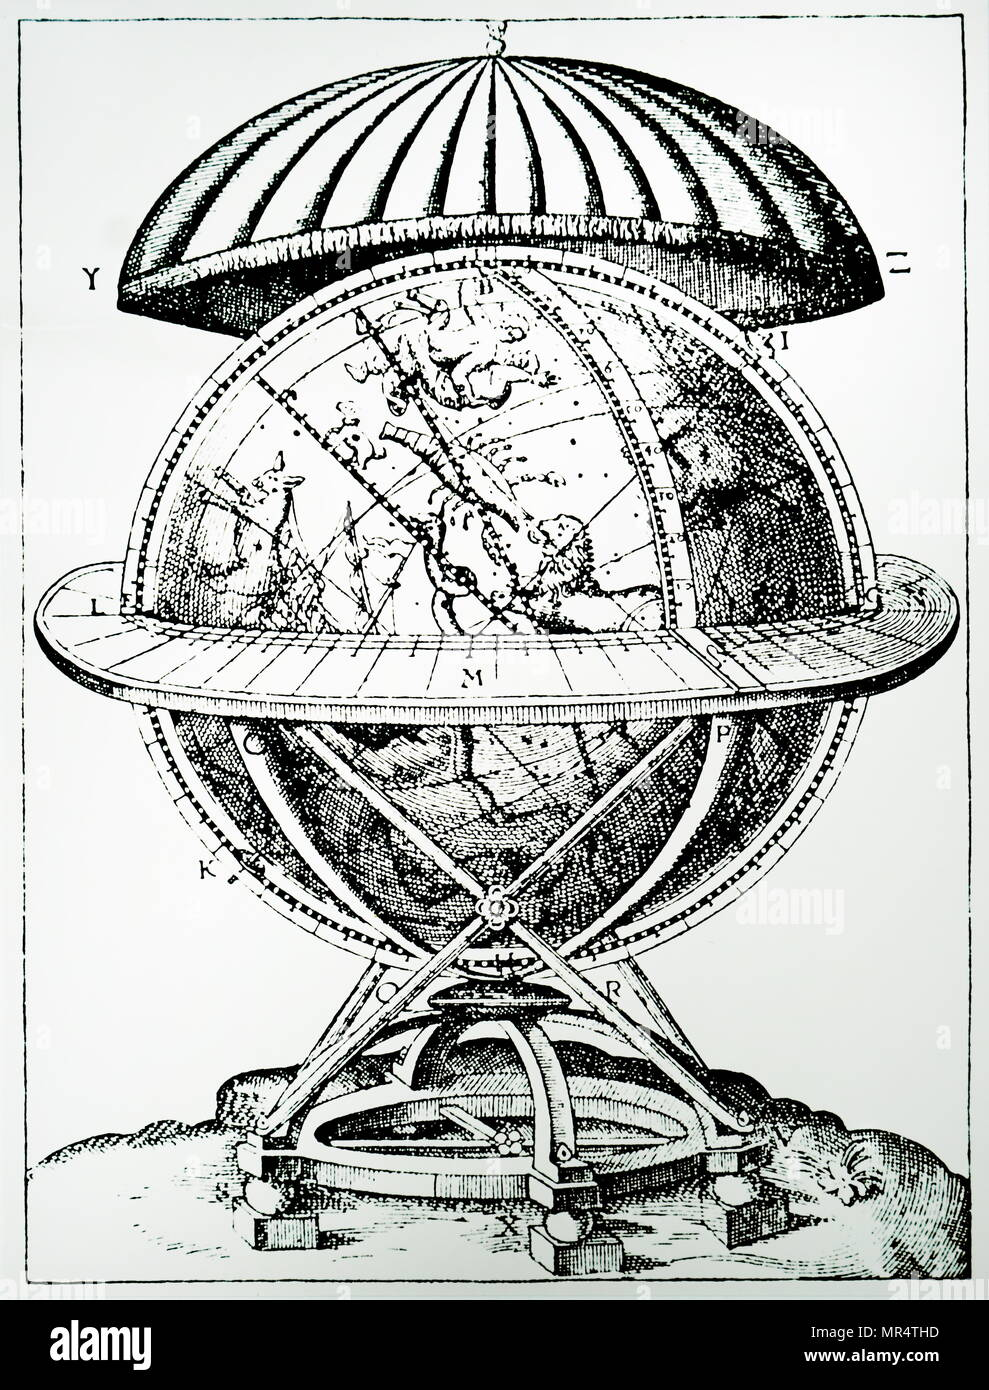 Engraving depicting Tycho Brahe's great celestial globe on which he plotted the positions of the stars he observed. Tycho Brahe (1546-1601) a Danish nobleman, astronomer, and writer know for his accurate and comprehensive astronomical and planetary observations. Dated 17th century - Stock Image